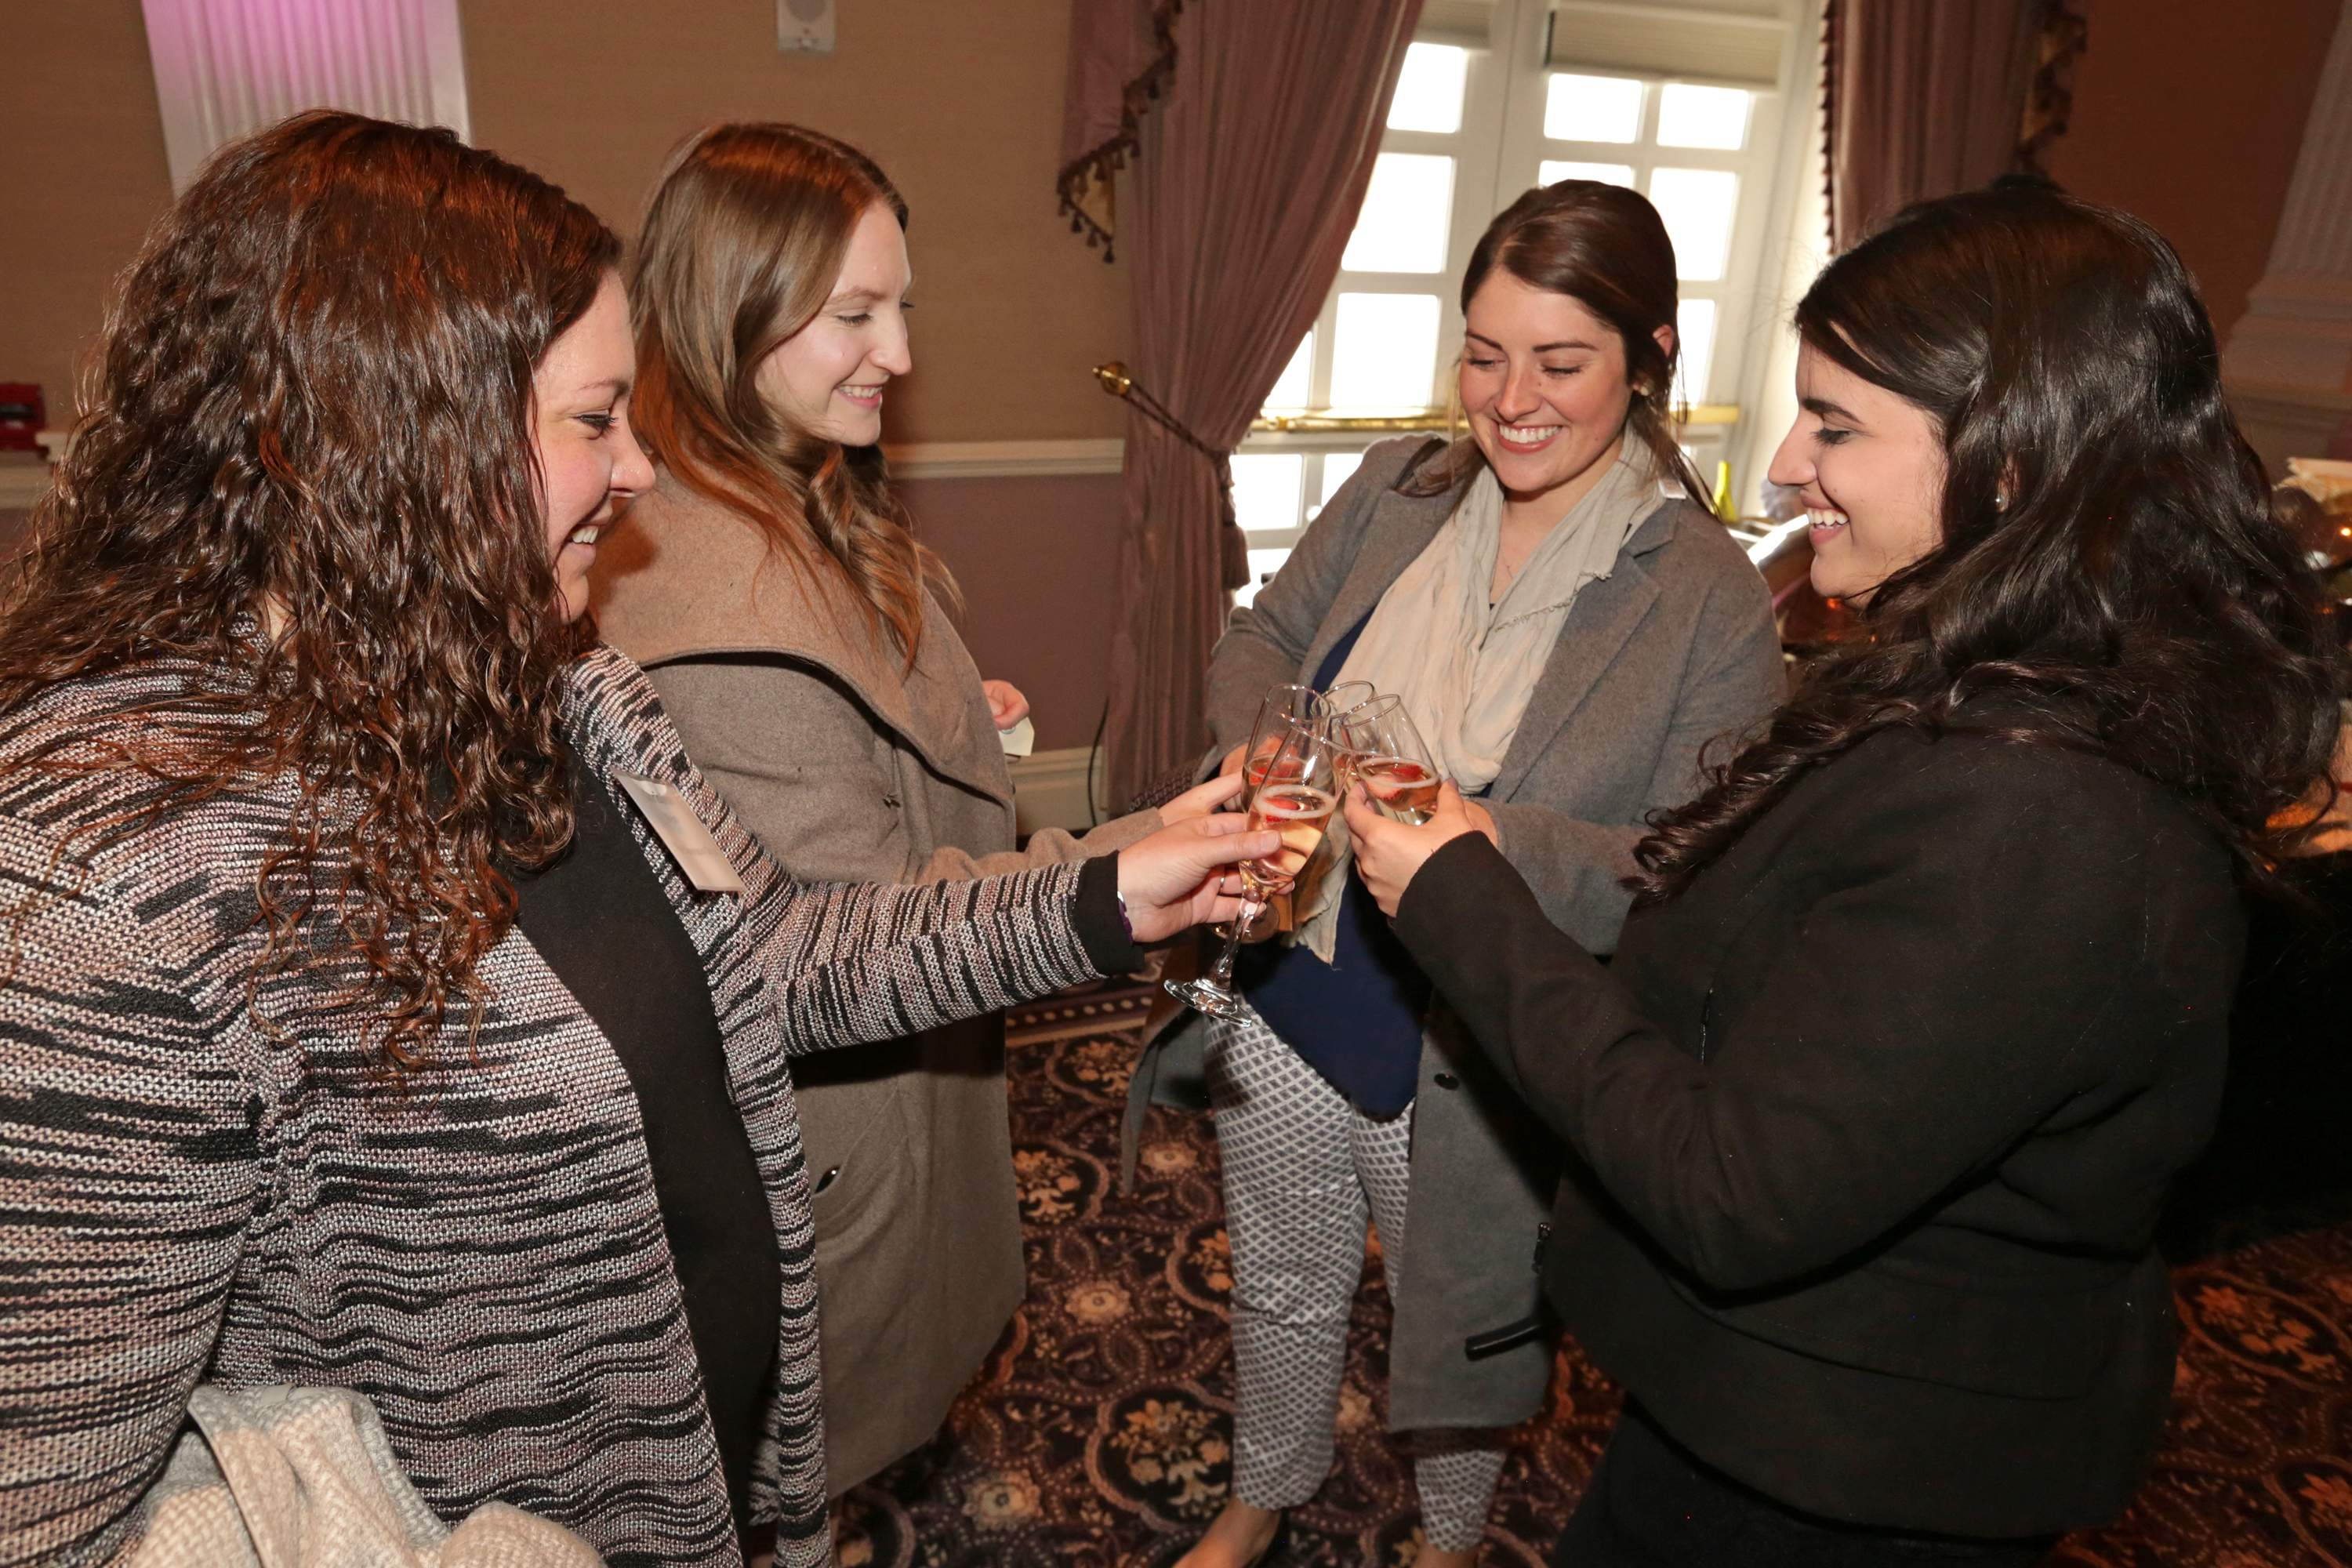 Celebratory cheers were in order at the Best 50 Women in Business event honoring New Jersey's most dynamic business women who are making headlines in their field.